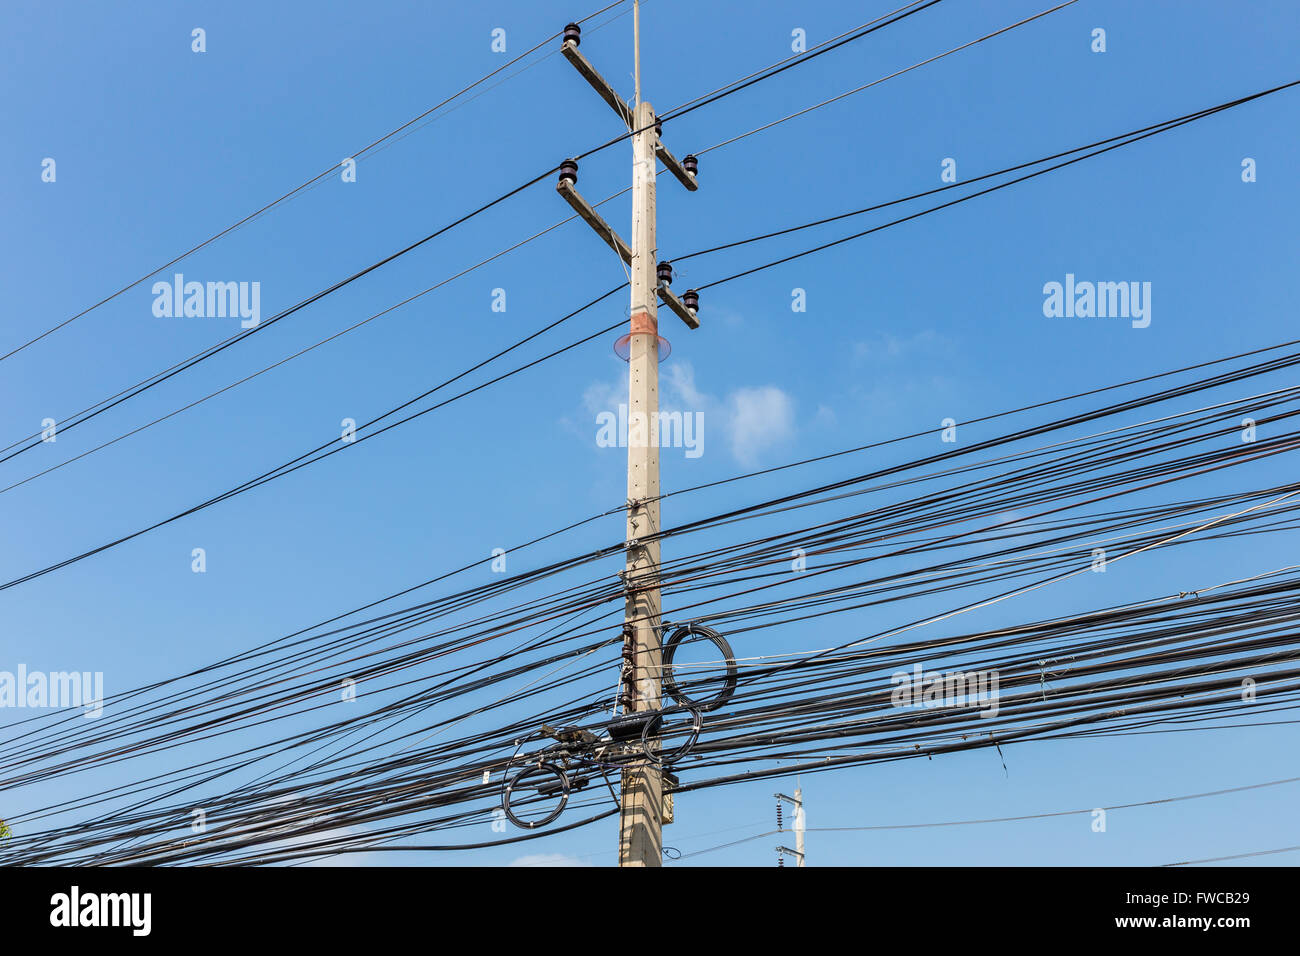 Electrical Wires On Power Pole Thailand